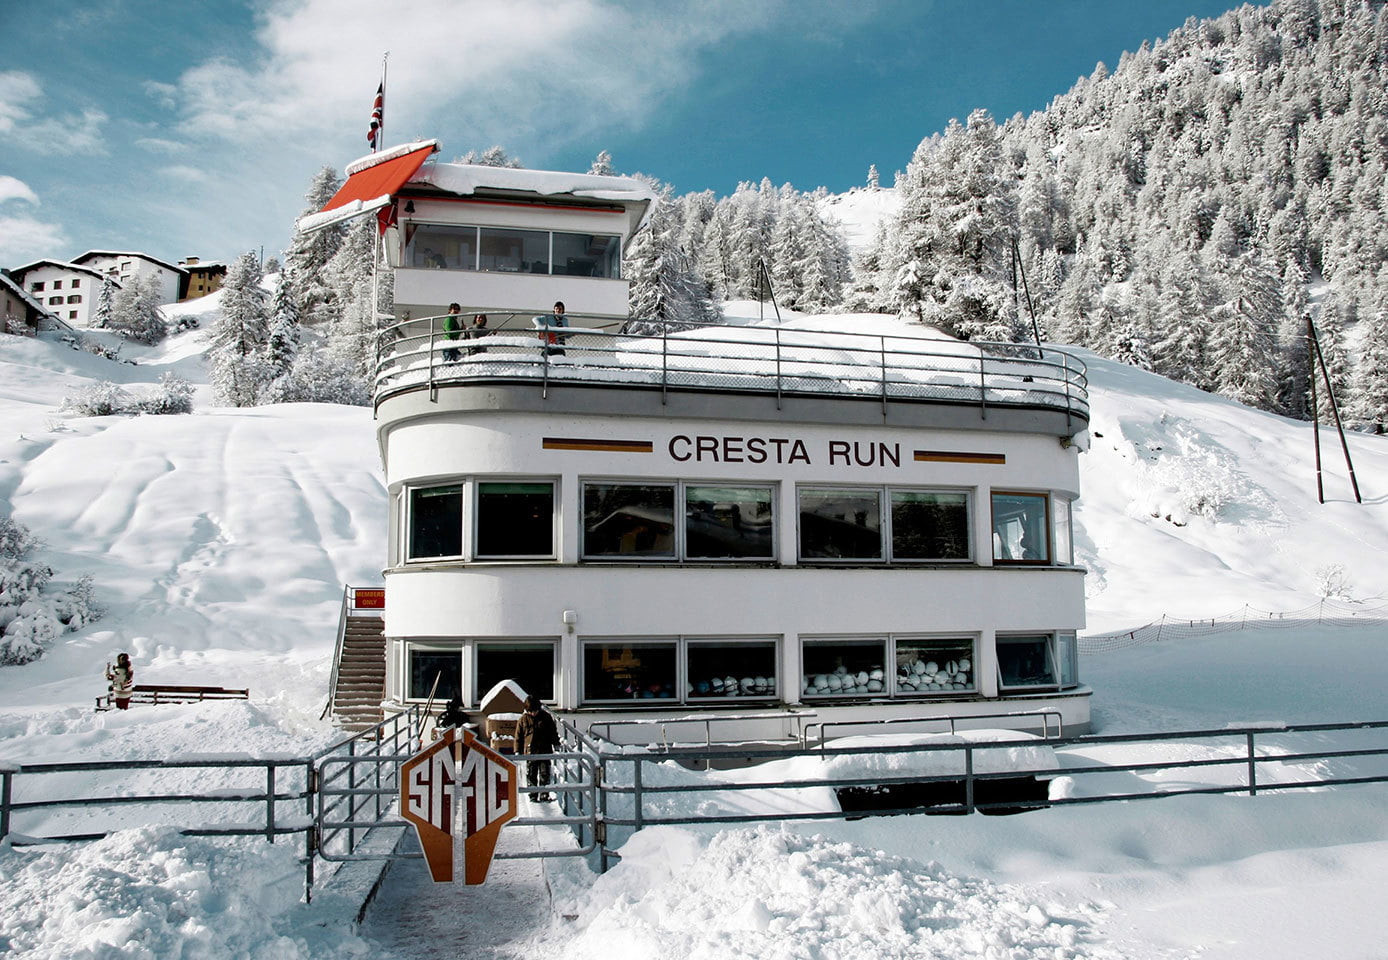 St Moritz, home of the famous Cresta Run, will be one of the most memorable venues being used for the 2020 Winter Youth Olympic Games ©St Moritz Tobogganing Club